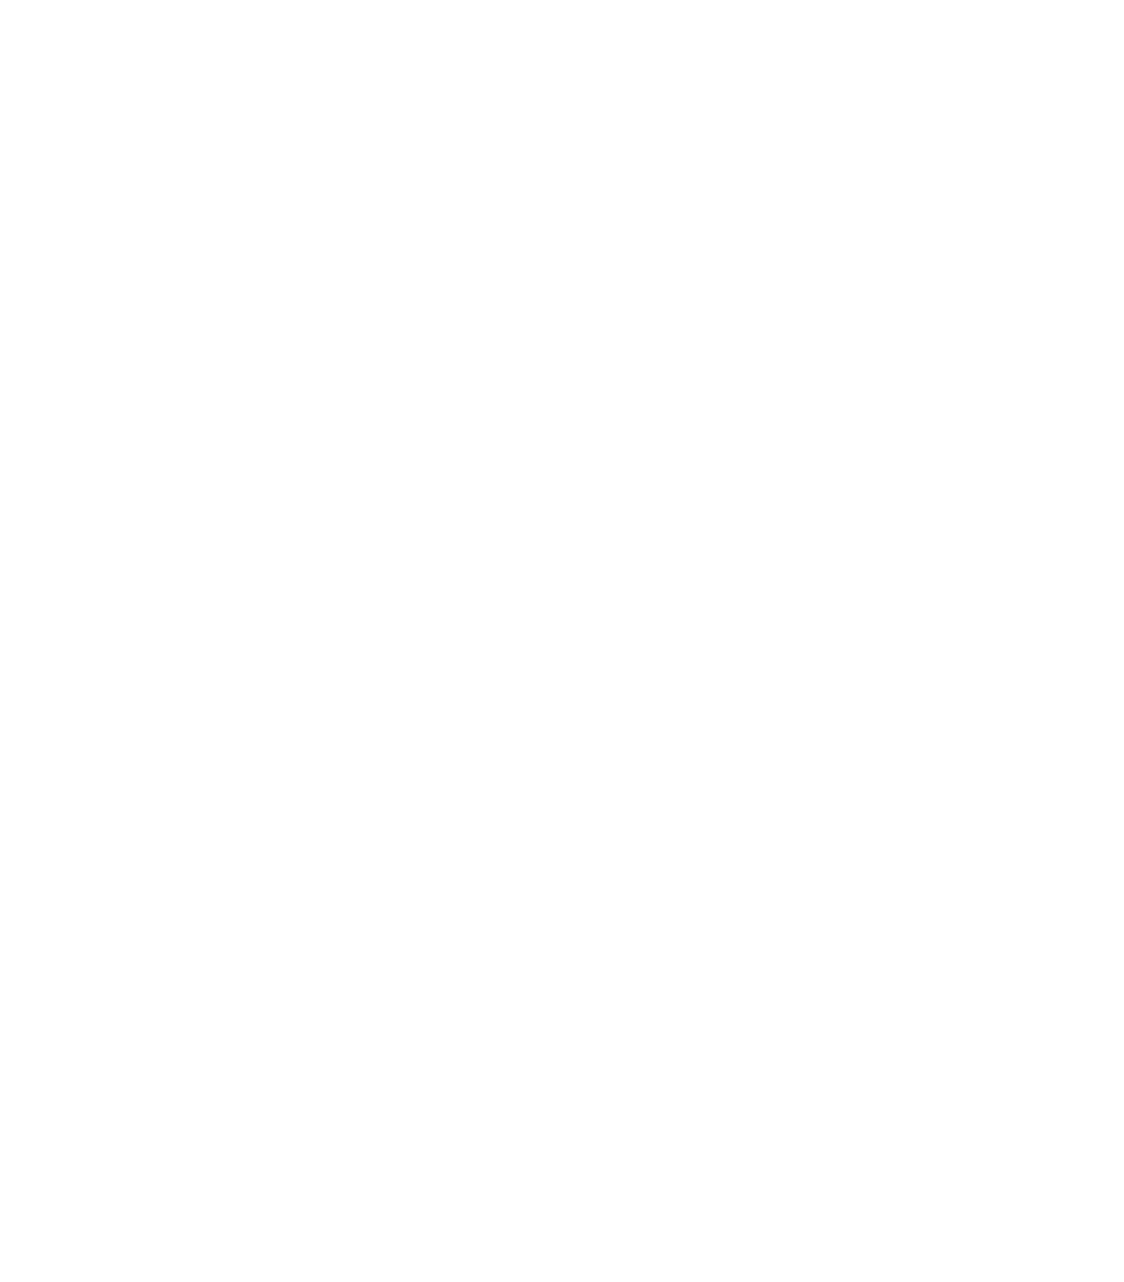 Download Source Vine Logo Png White Png Image With No Background Pngkey Com Vine is a brand categorized in internet & it. download source vine logo png white